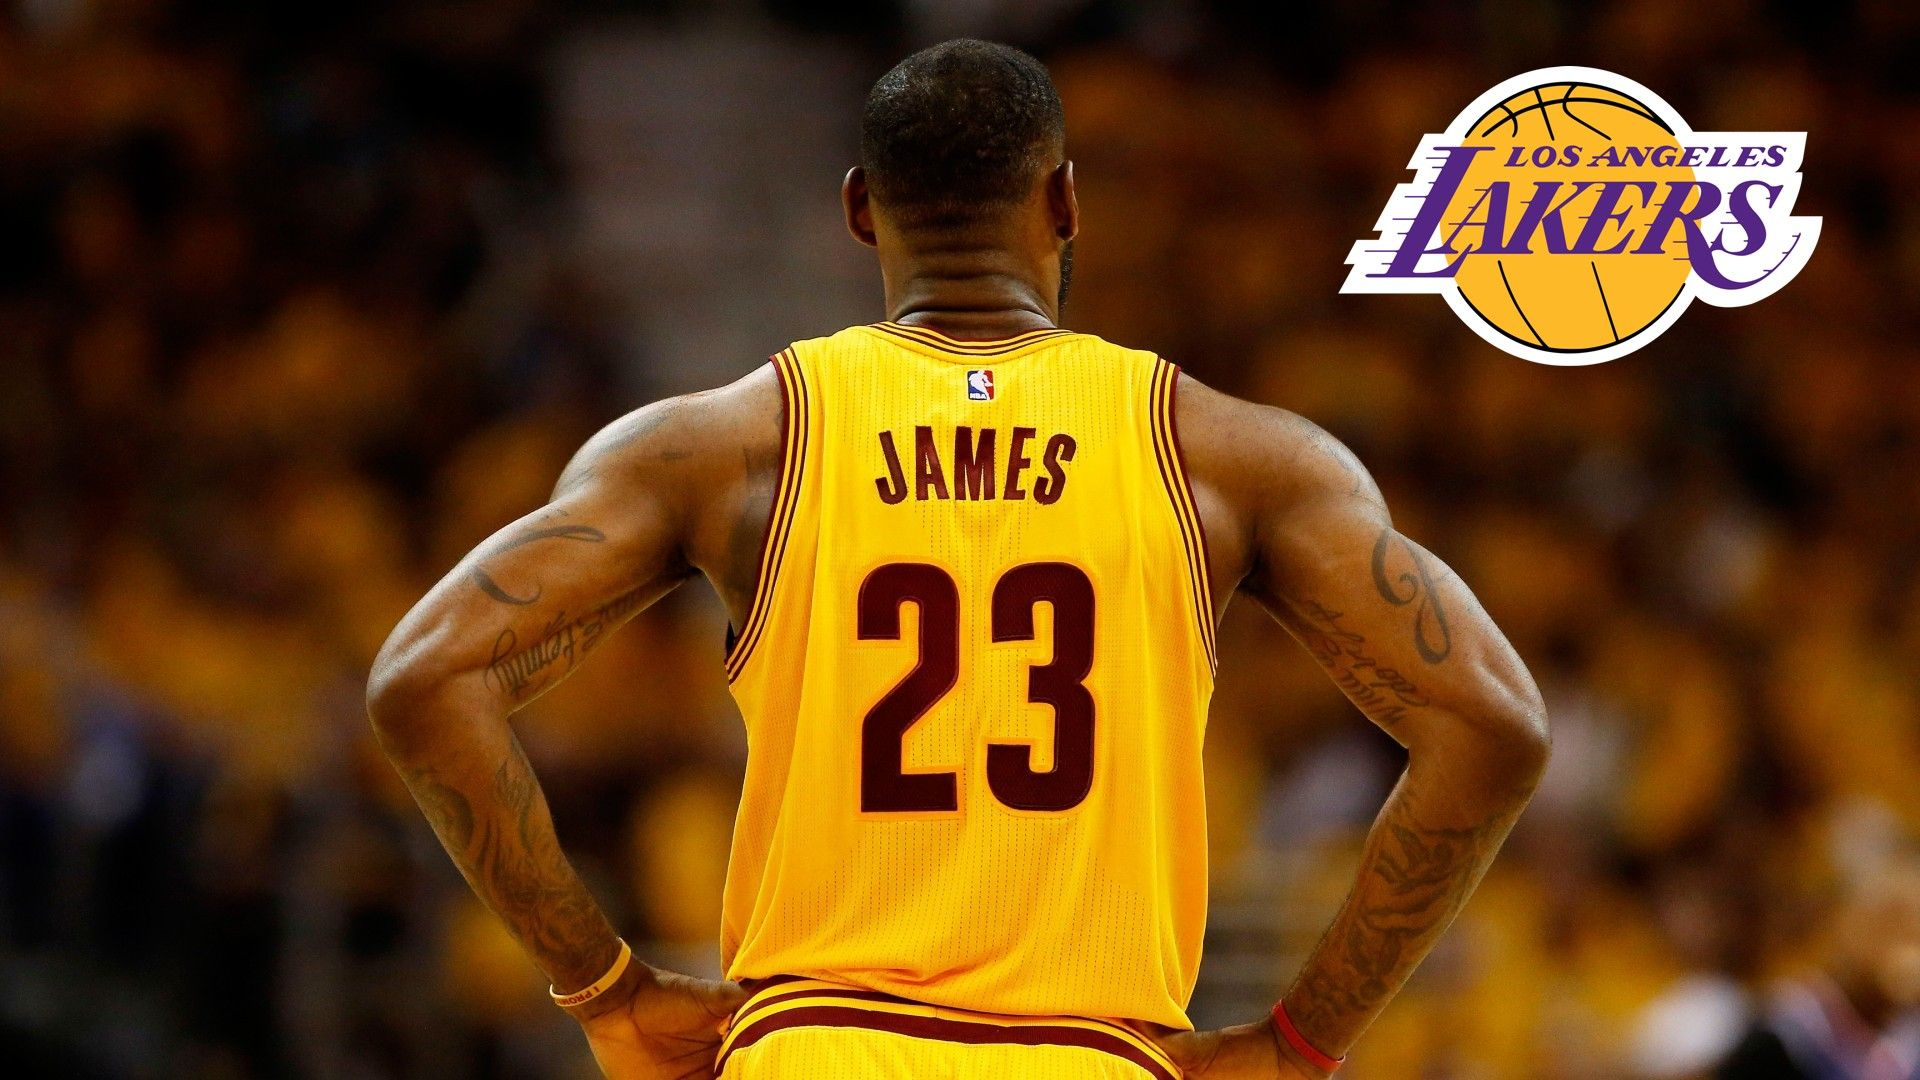 Lebron James Lakers Wallpapers Top Free Lebron James Lakers Backgrounds Wallpaperaccess